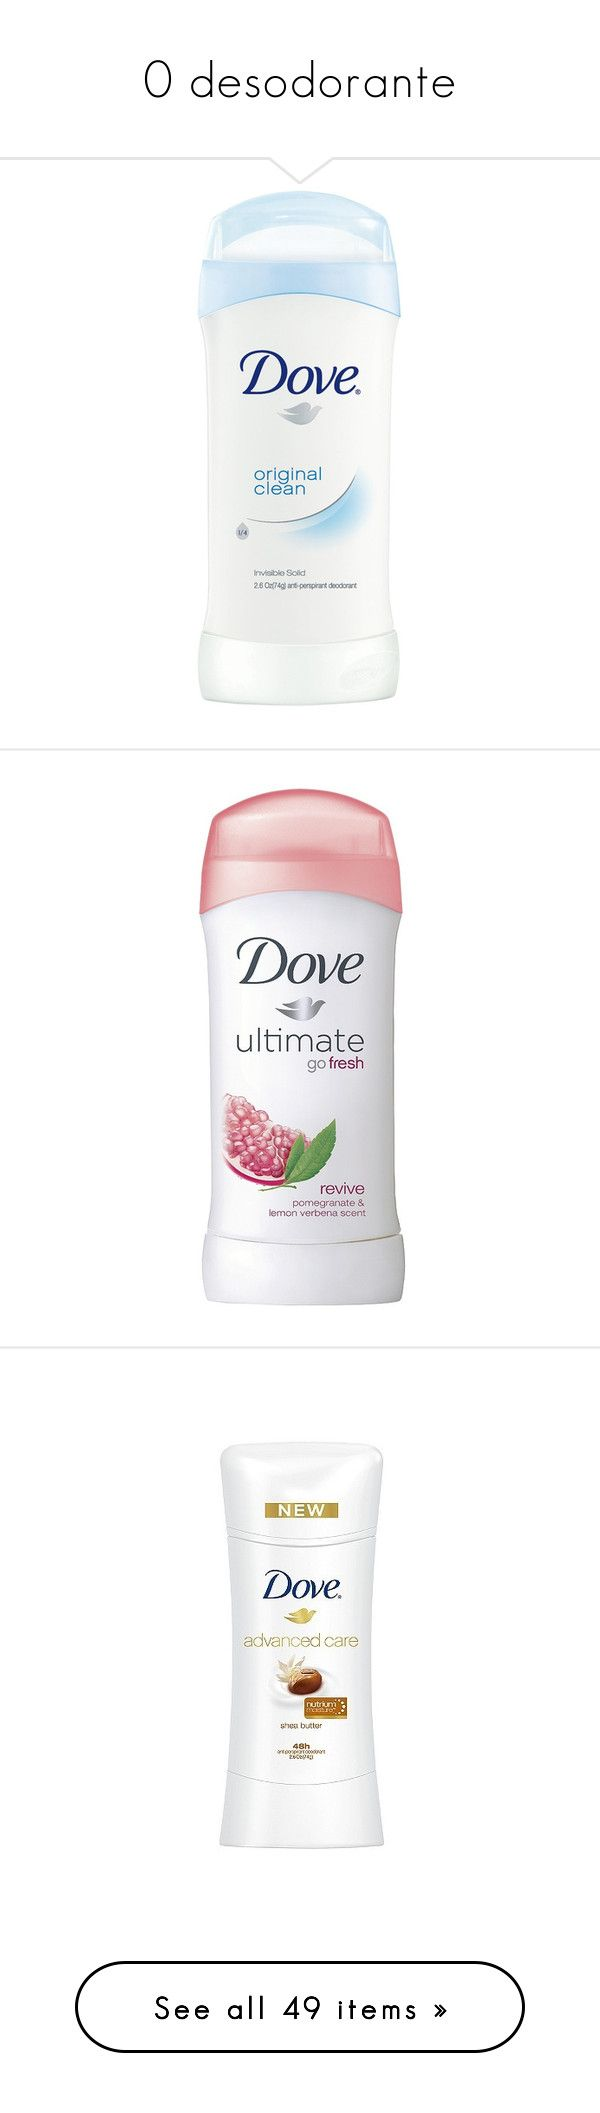 """""""0 desodorante"""" by paradapermitida on Polyvore featuring beauty products, bath & body products, deodorant, antiperspirant deodorant, anti perspirant deodorant, anti perspirant and deodorant, antiperspirant and deodorant, beauty, makeup e bathroom"""